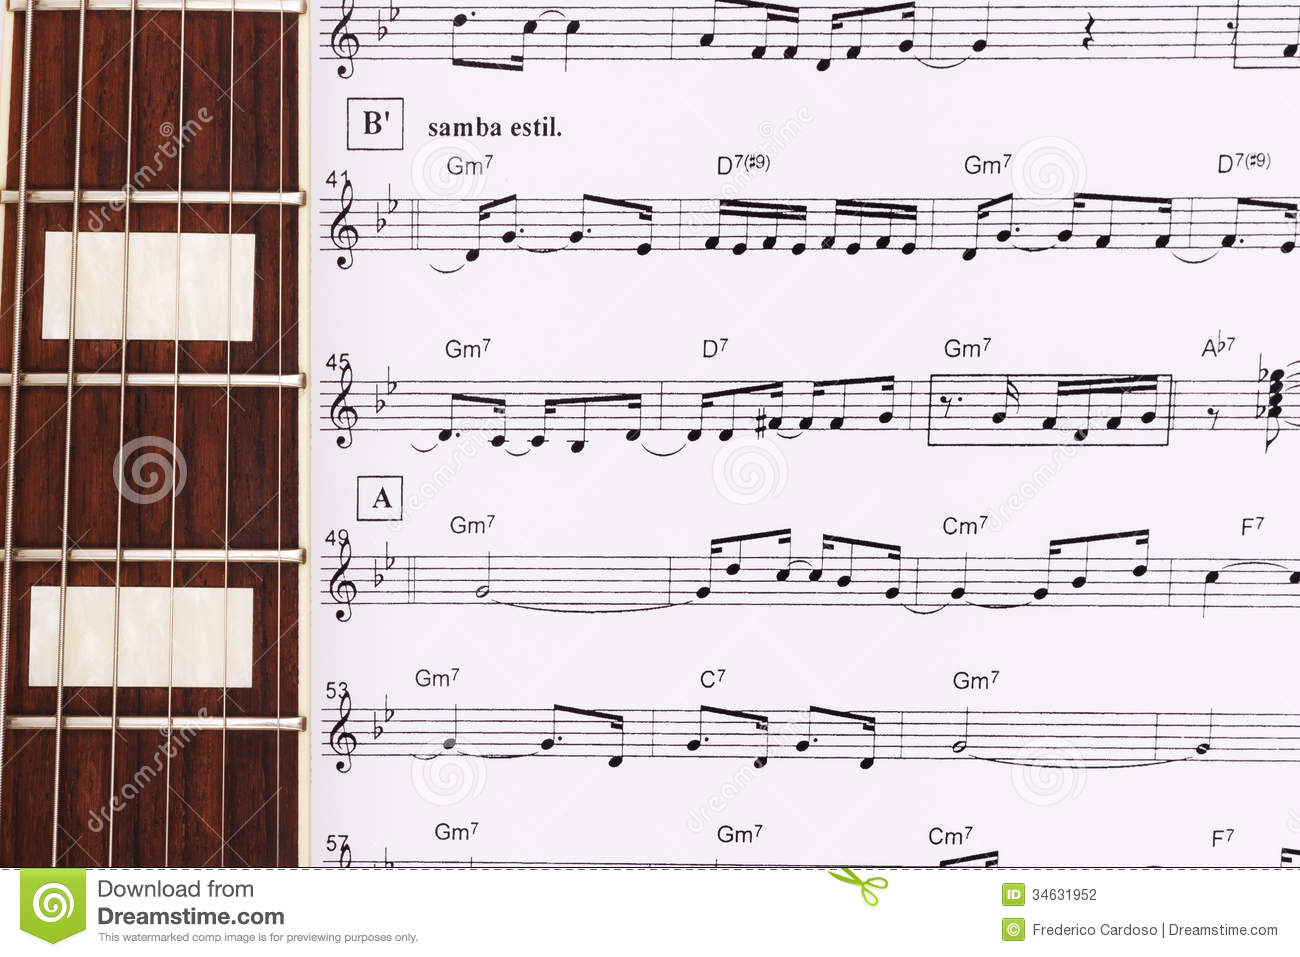 Guitar Neck Laying Across Sheet Music Stock Photo Image Of Chords